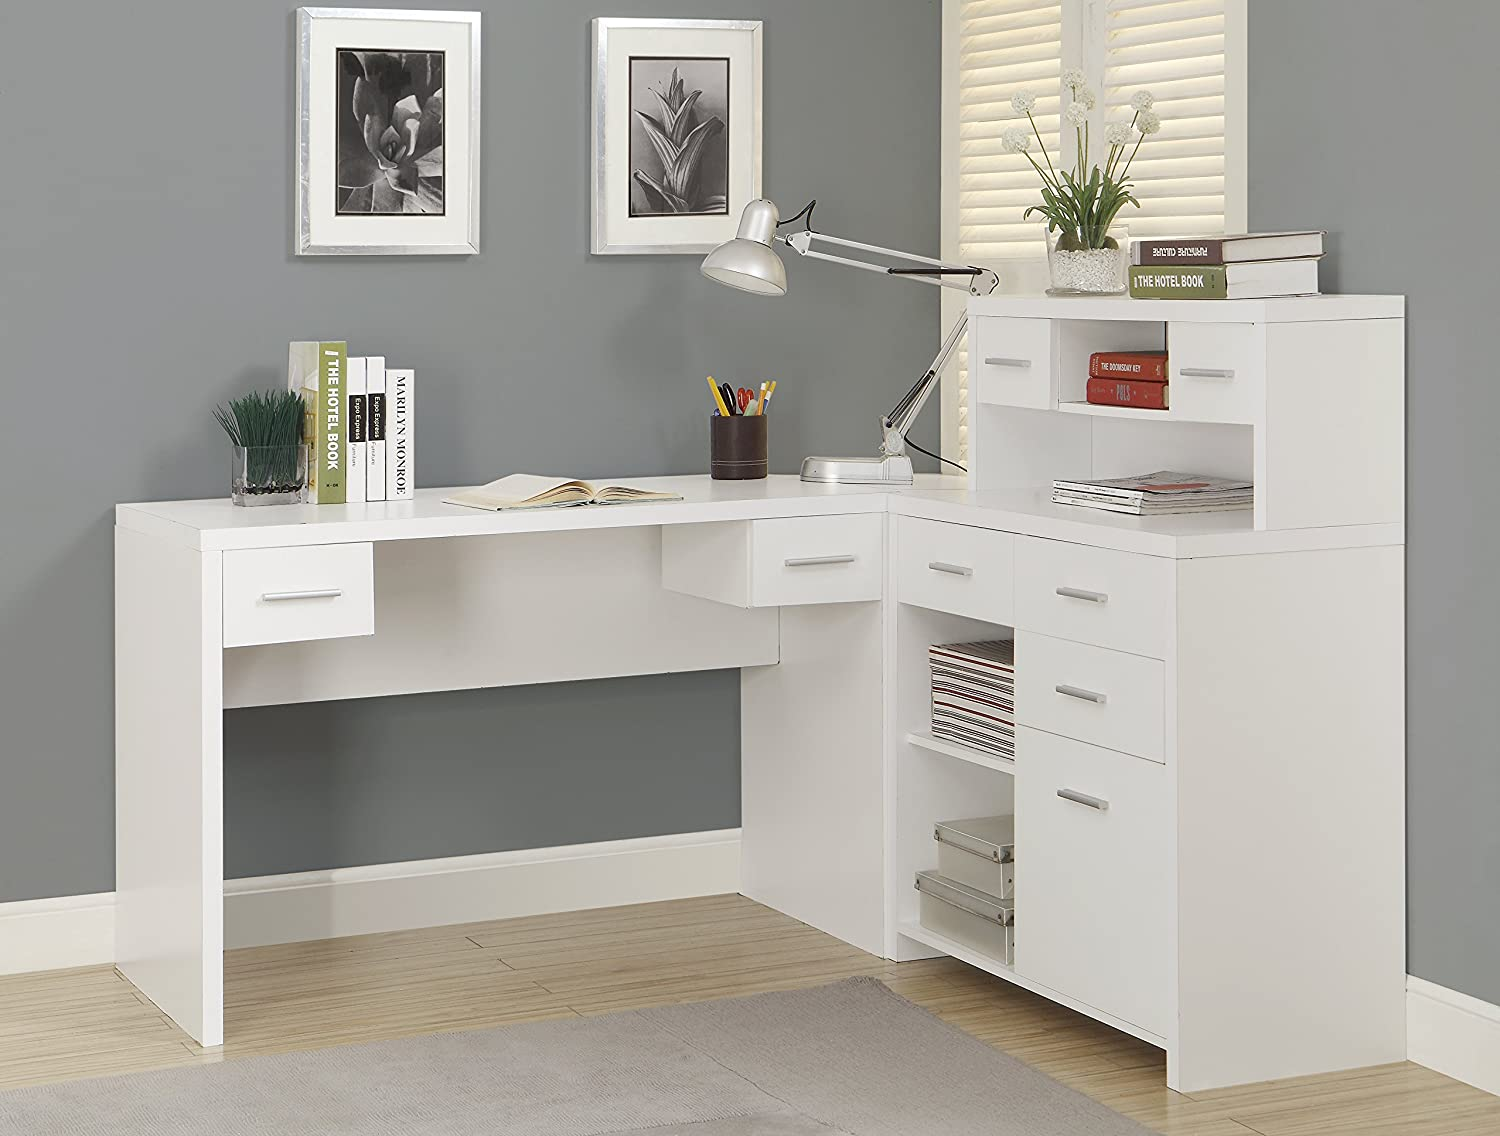 white office corner desk. Amazon.com: Monarch Hollow-Core L Shaped Home Office Desk, White: Kitchen \u0026 Dining White Corner Desk